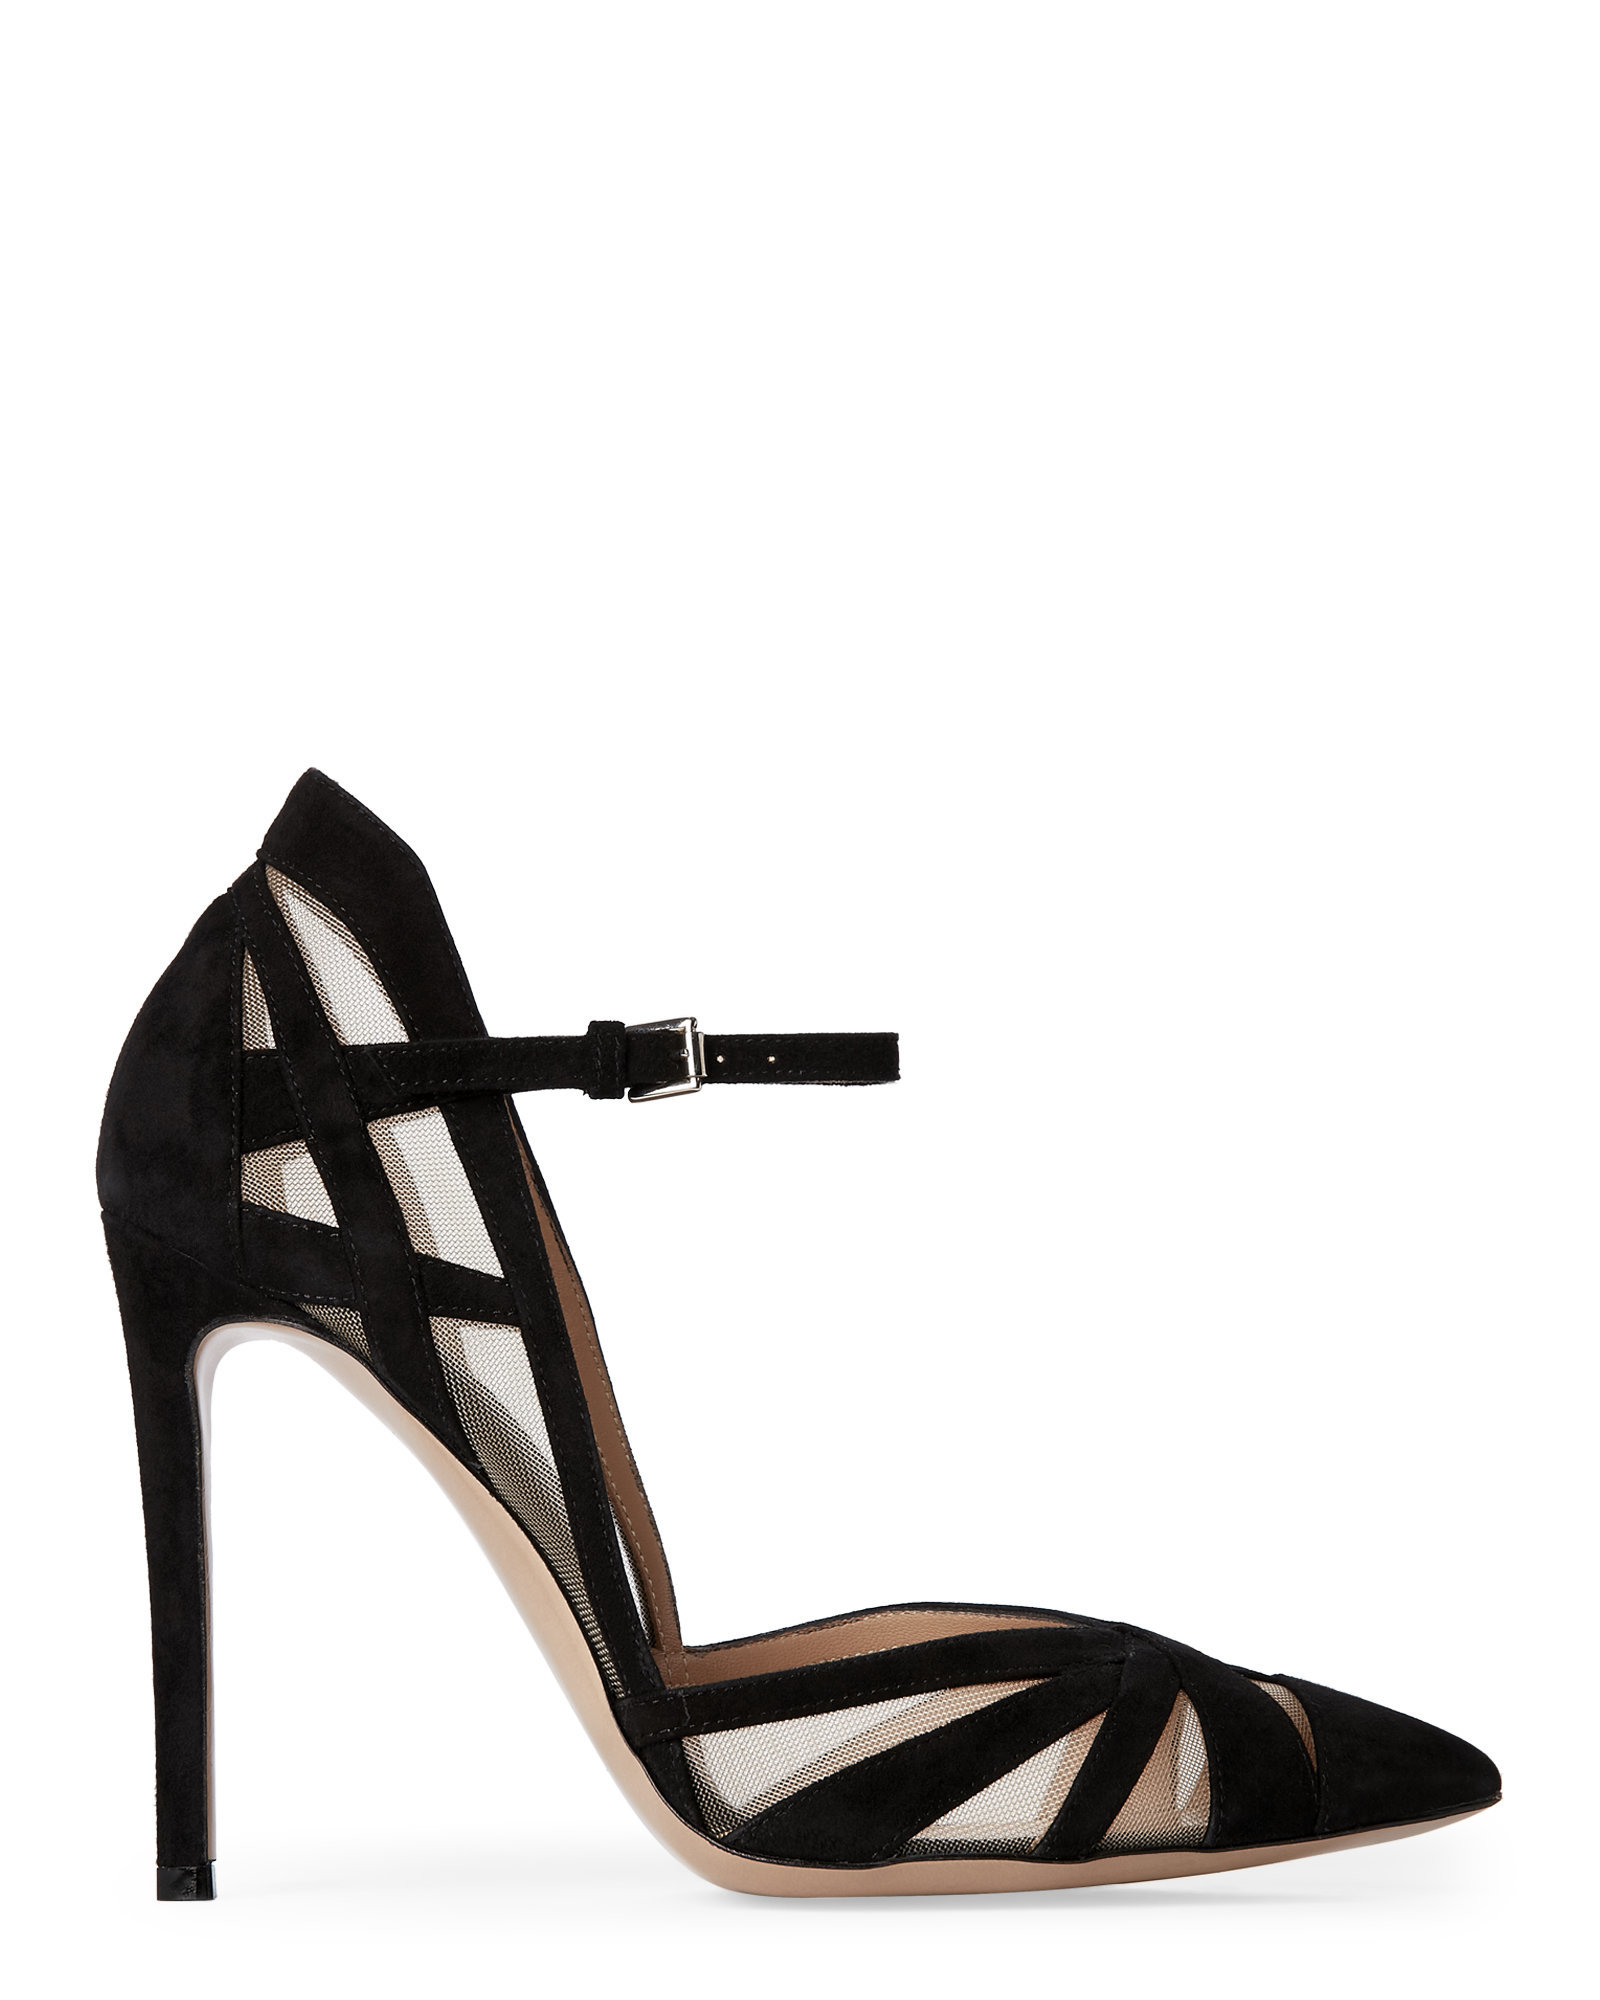 1309be88f2 Gianvito Rossi Black Cutout Ankle-Strap Pumps in Black - Lyst